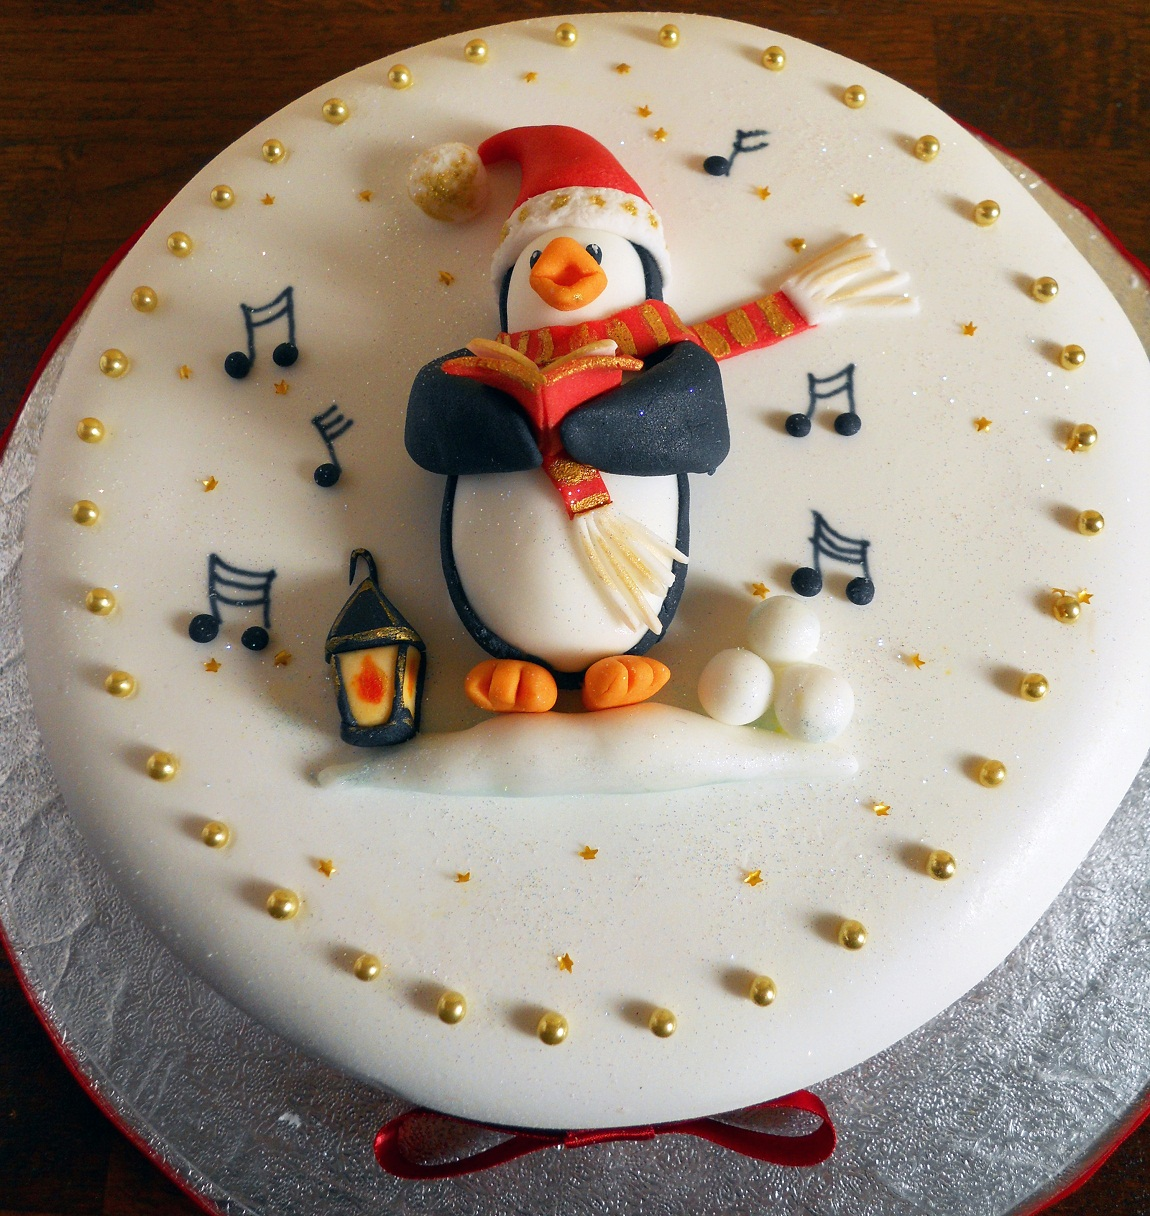 images of christmas cake - photo #47